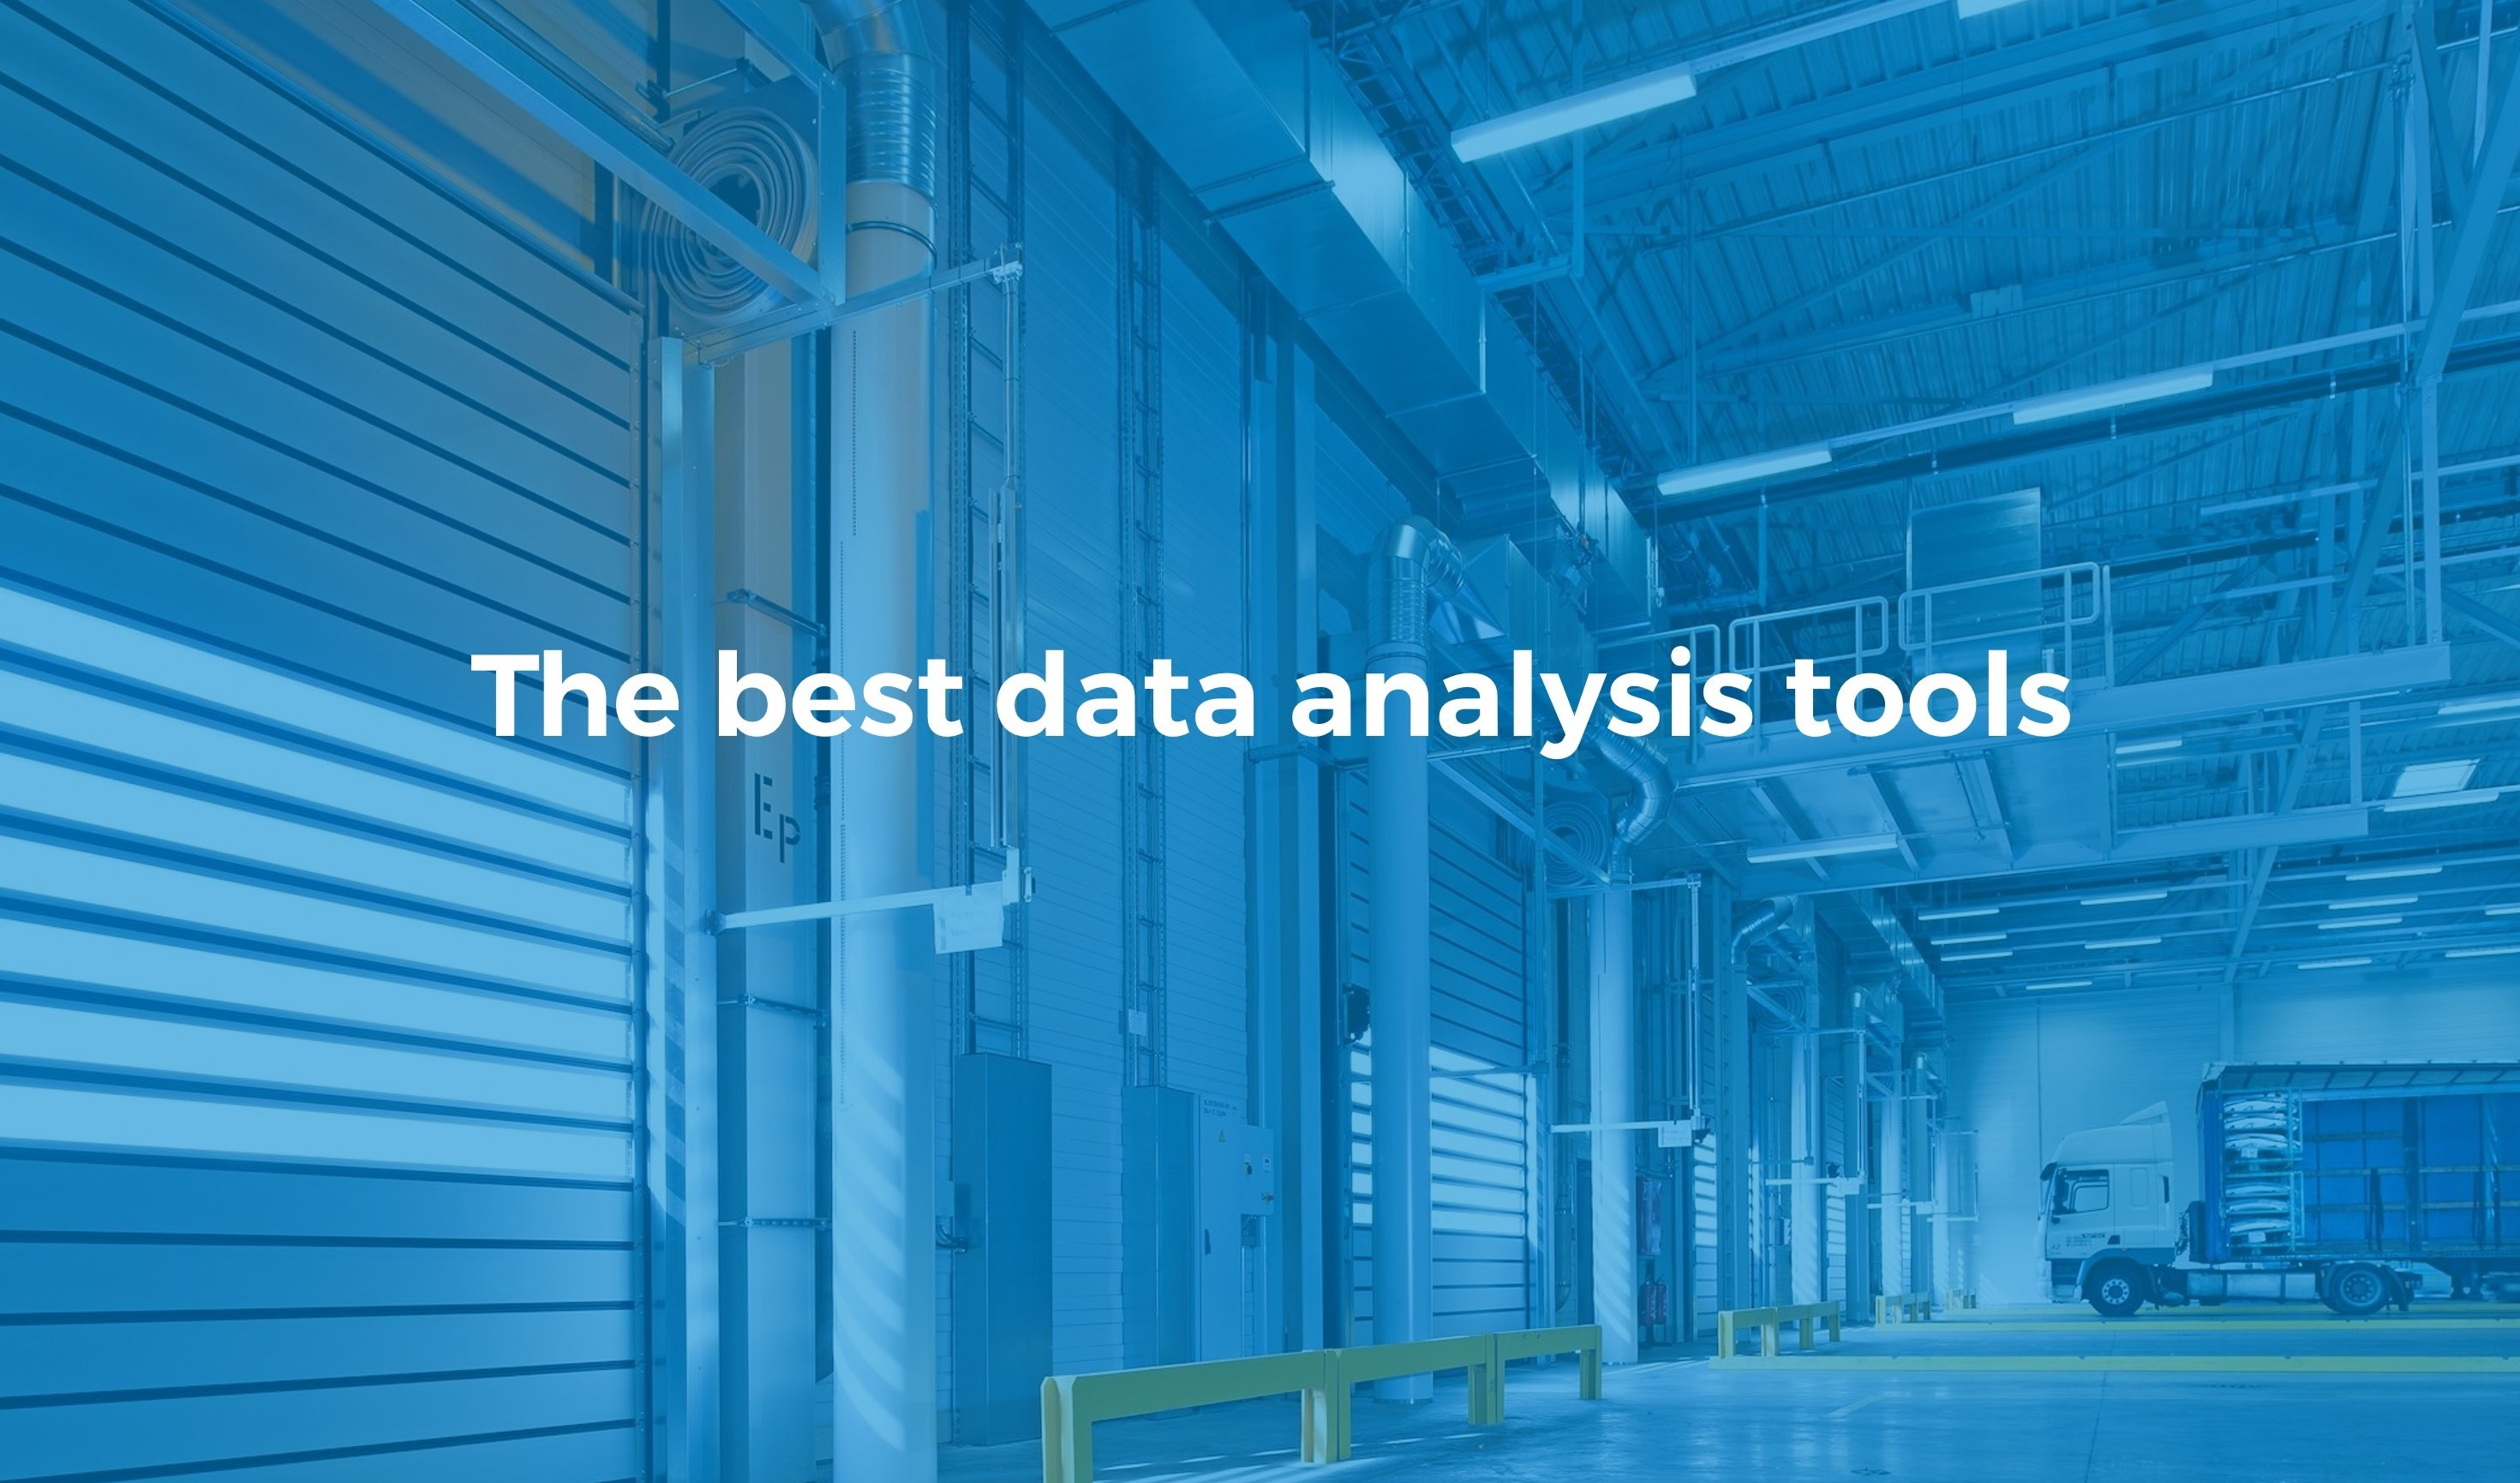 The best data analysis tools for an effective data management